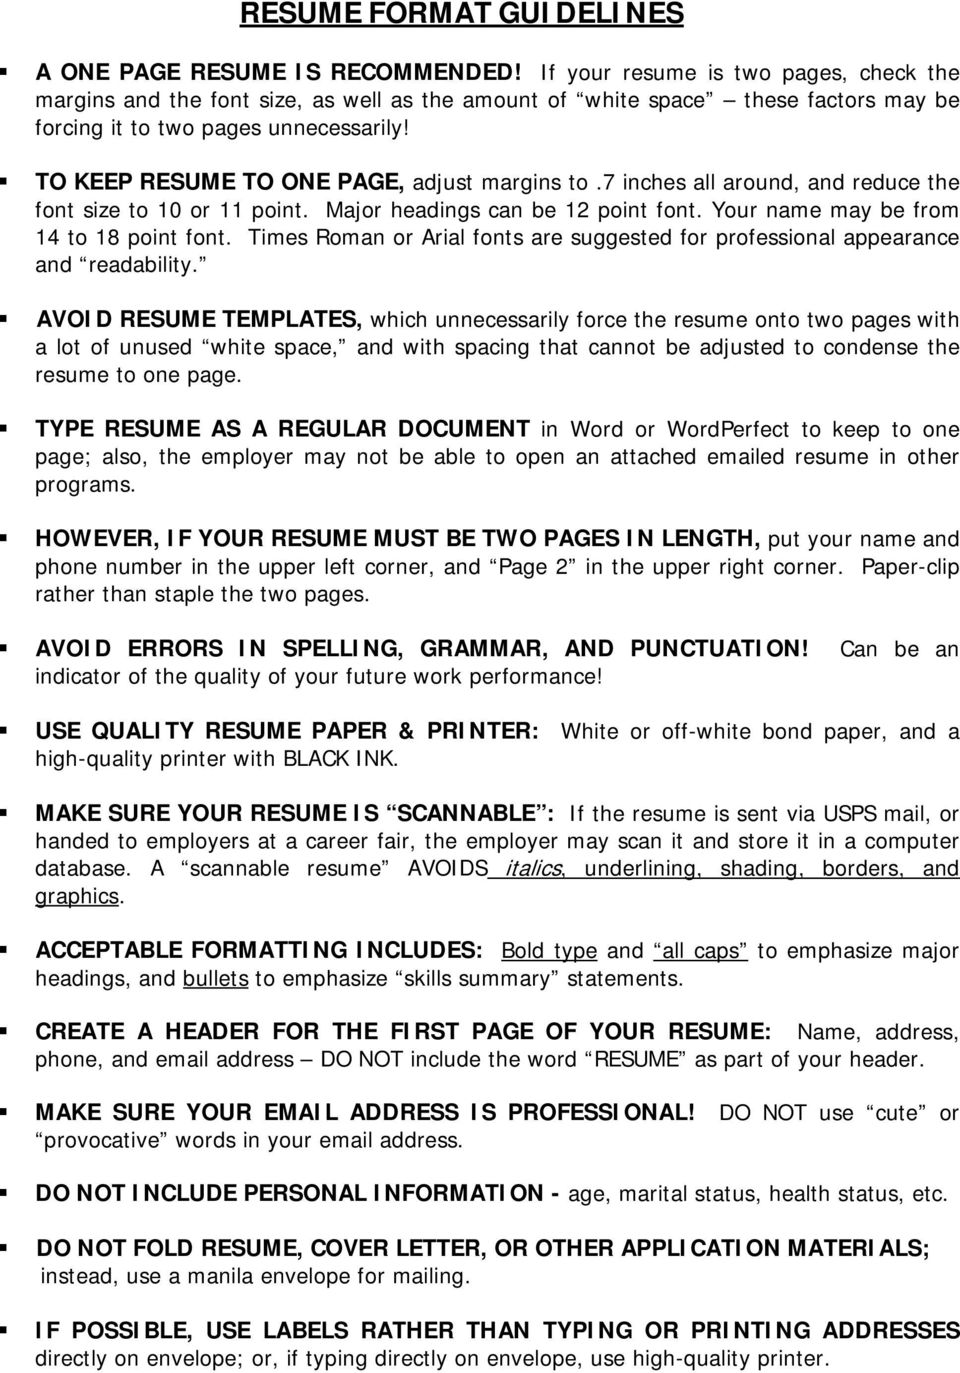 resume format guidelines pdf